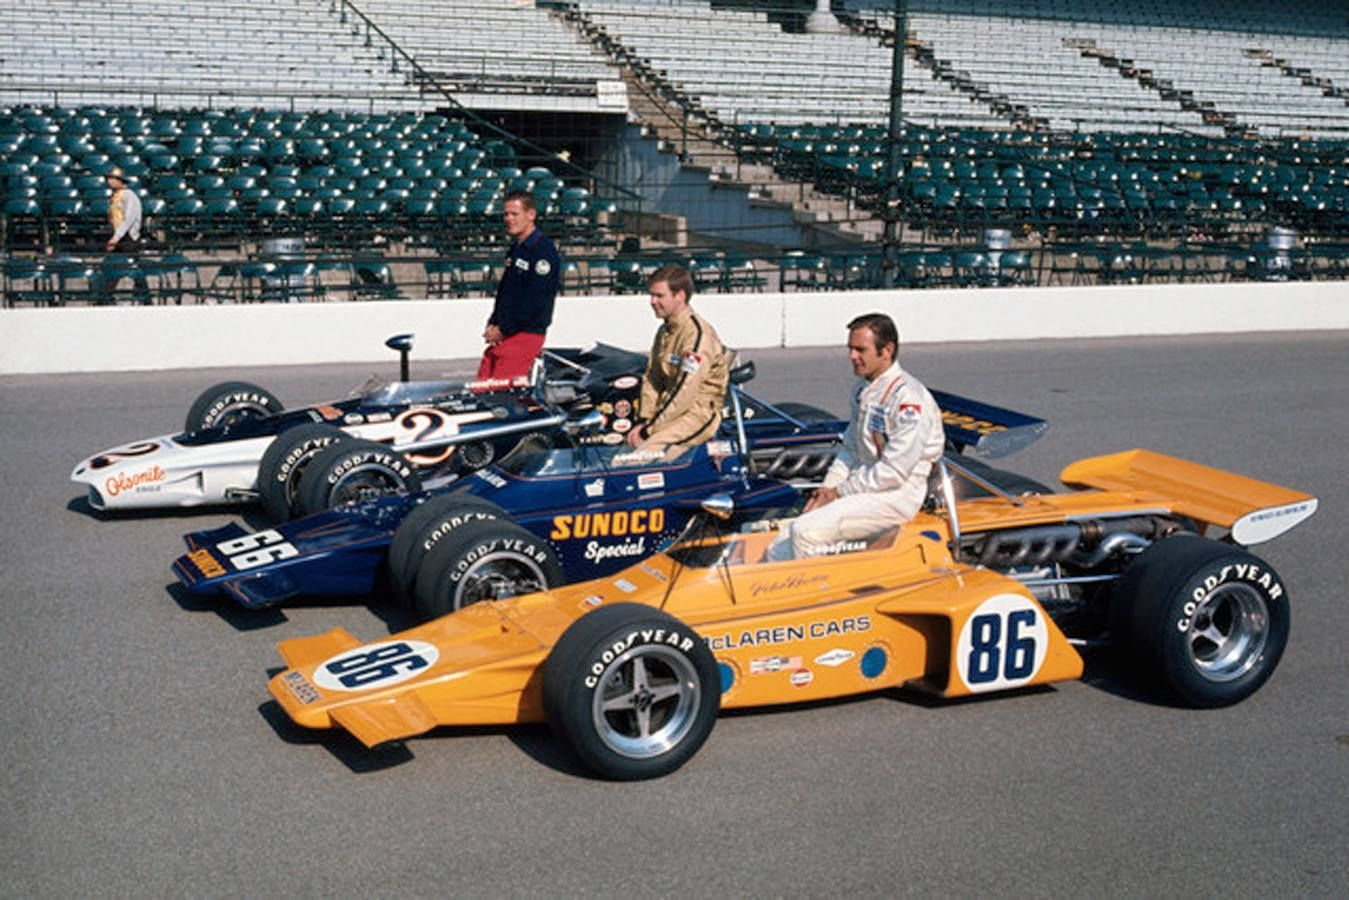 1971 Indy 500 front row . Peter Revson , Mark Donohue